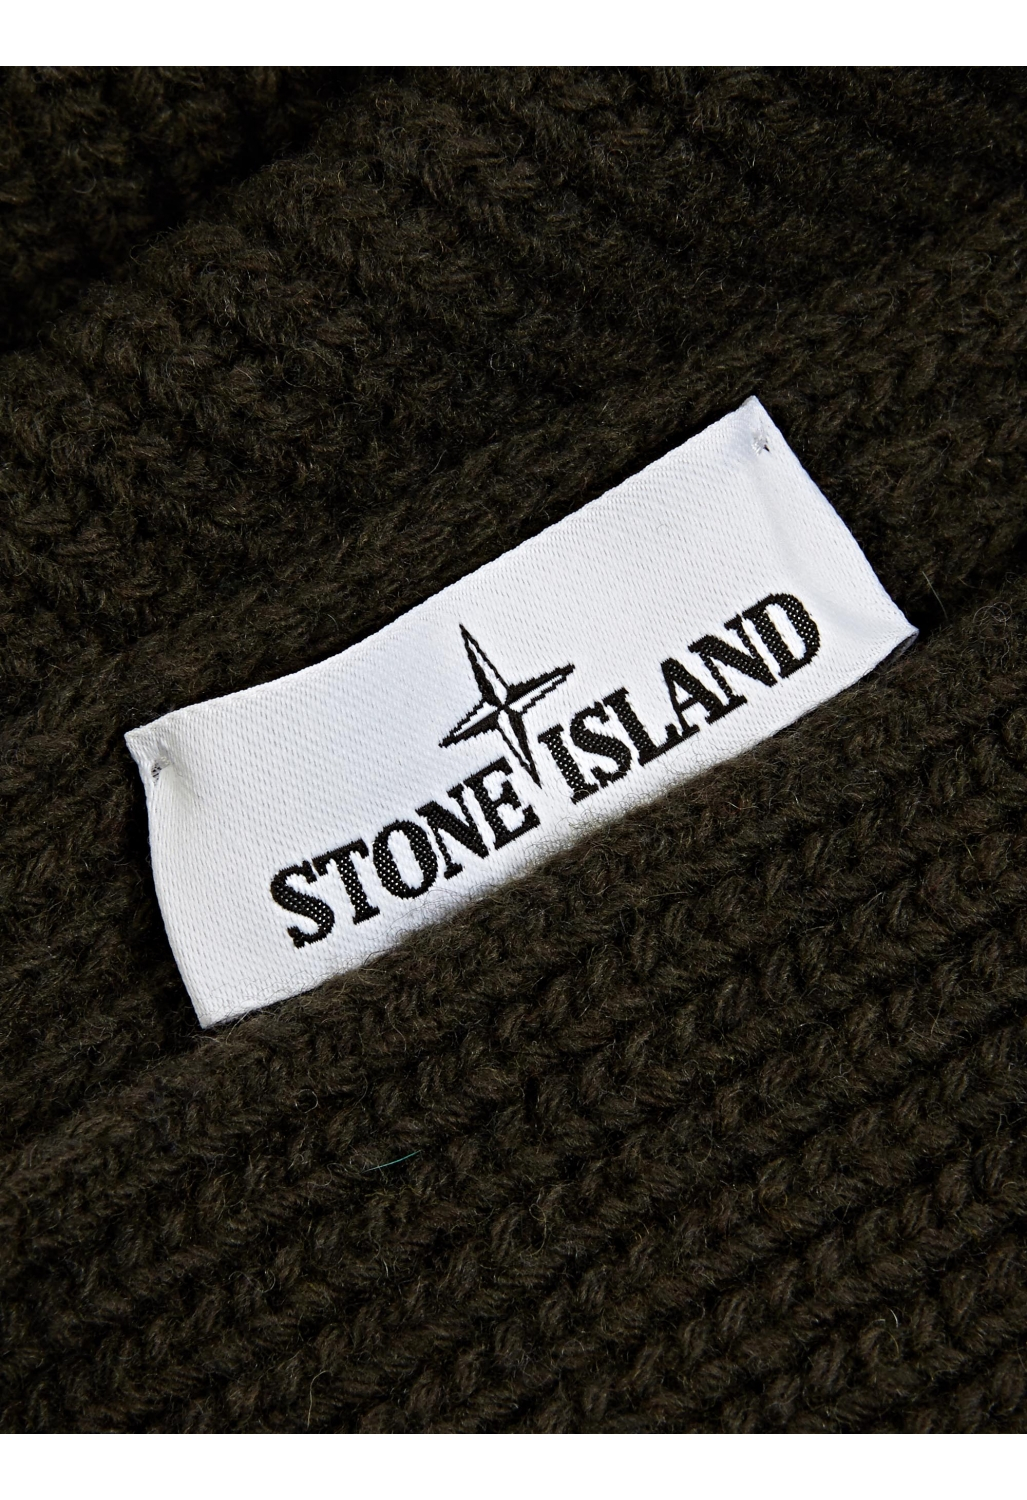 stone island grey wool scarf. Black Bedroom Furniture Sets. Home Design Ideas